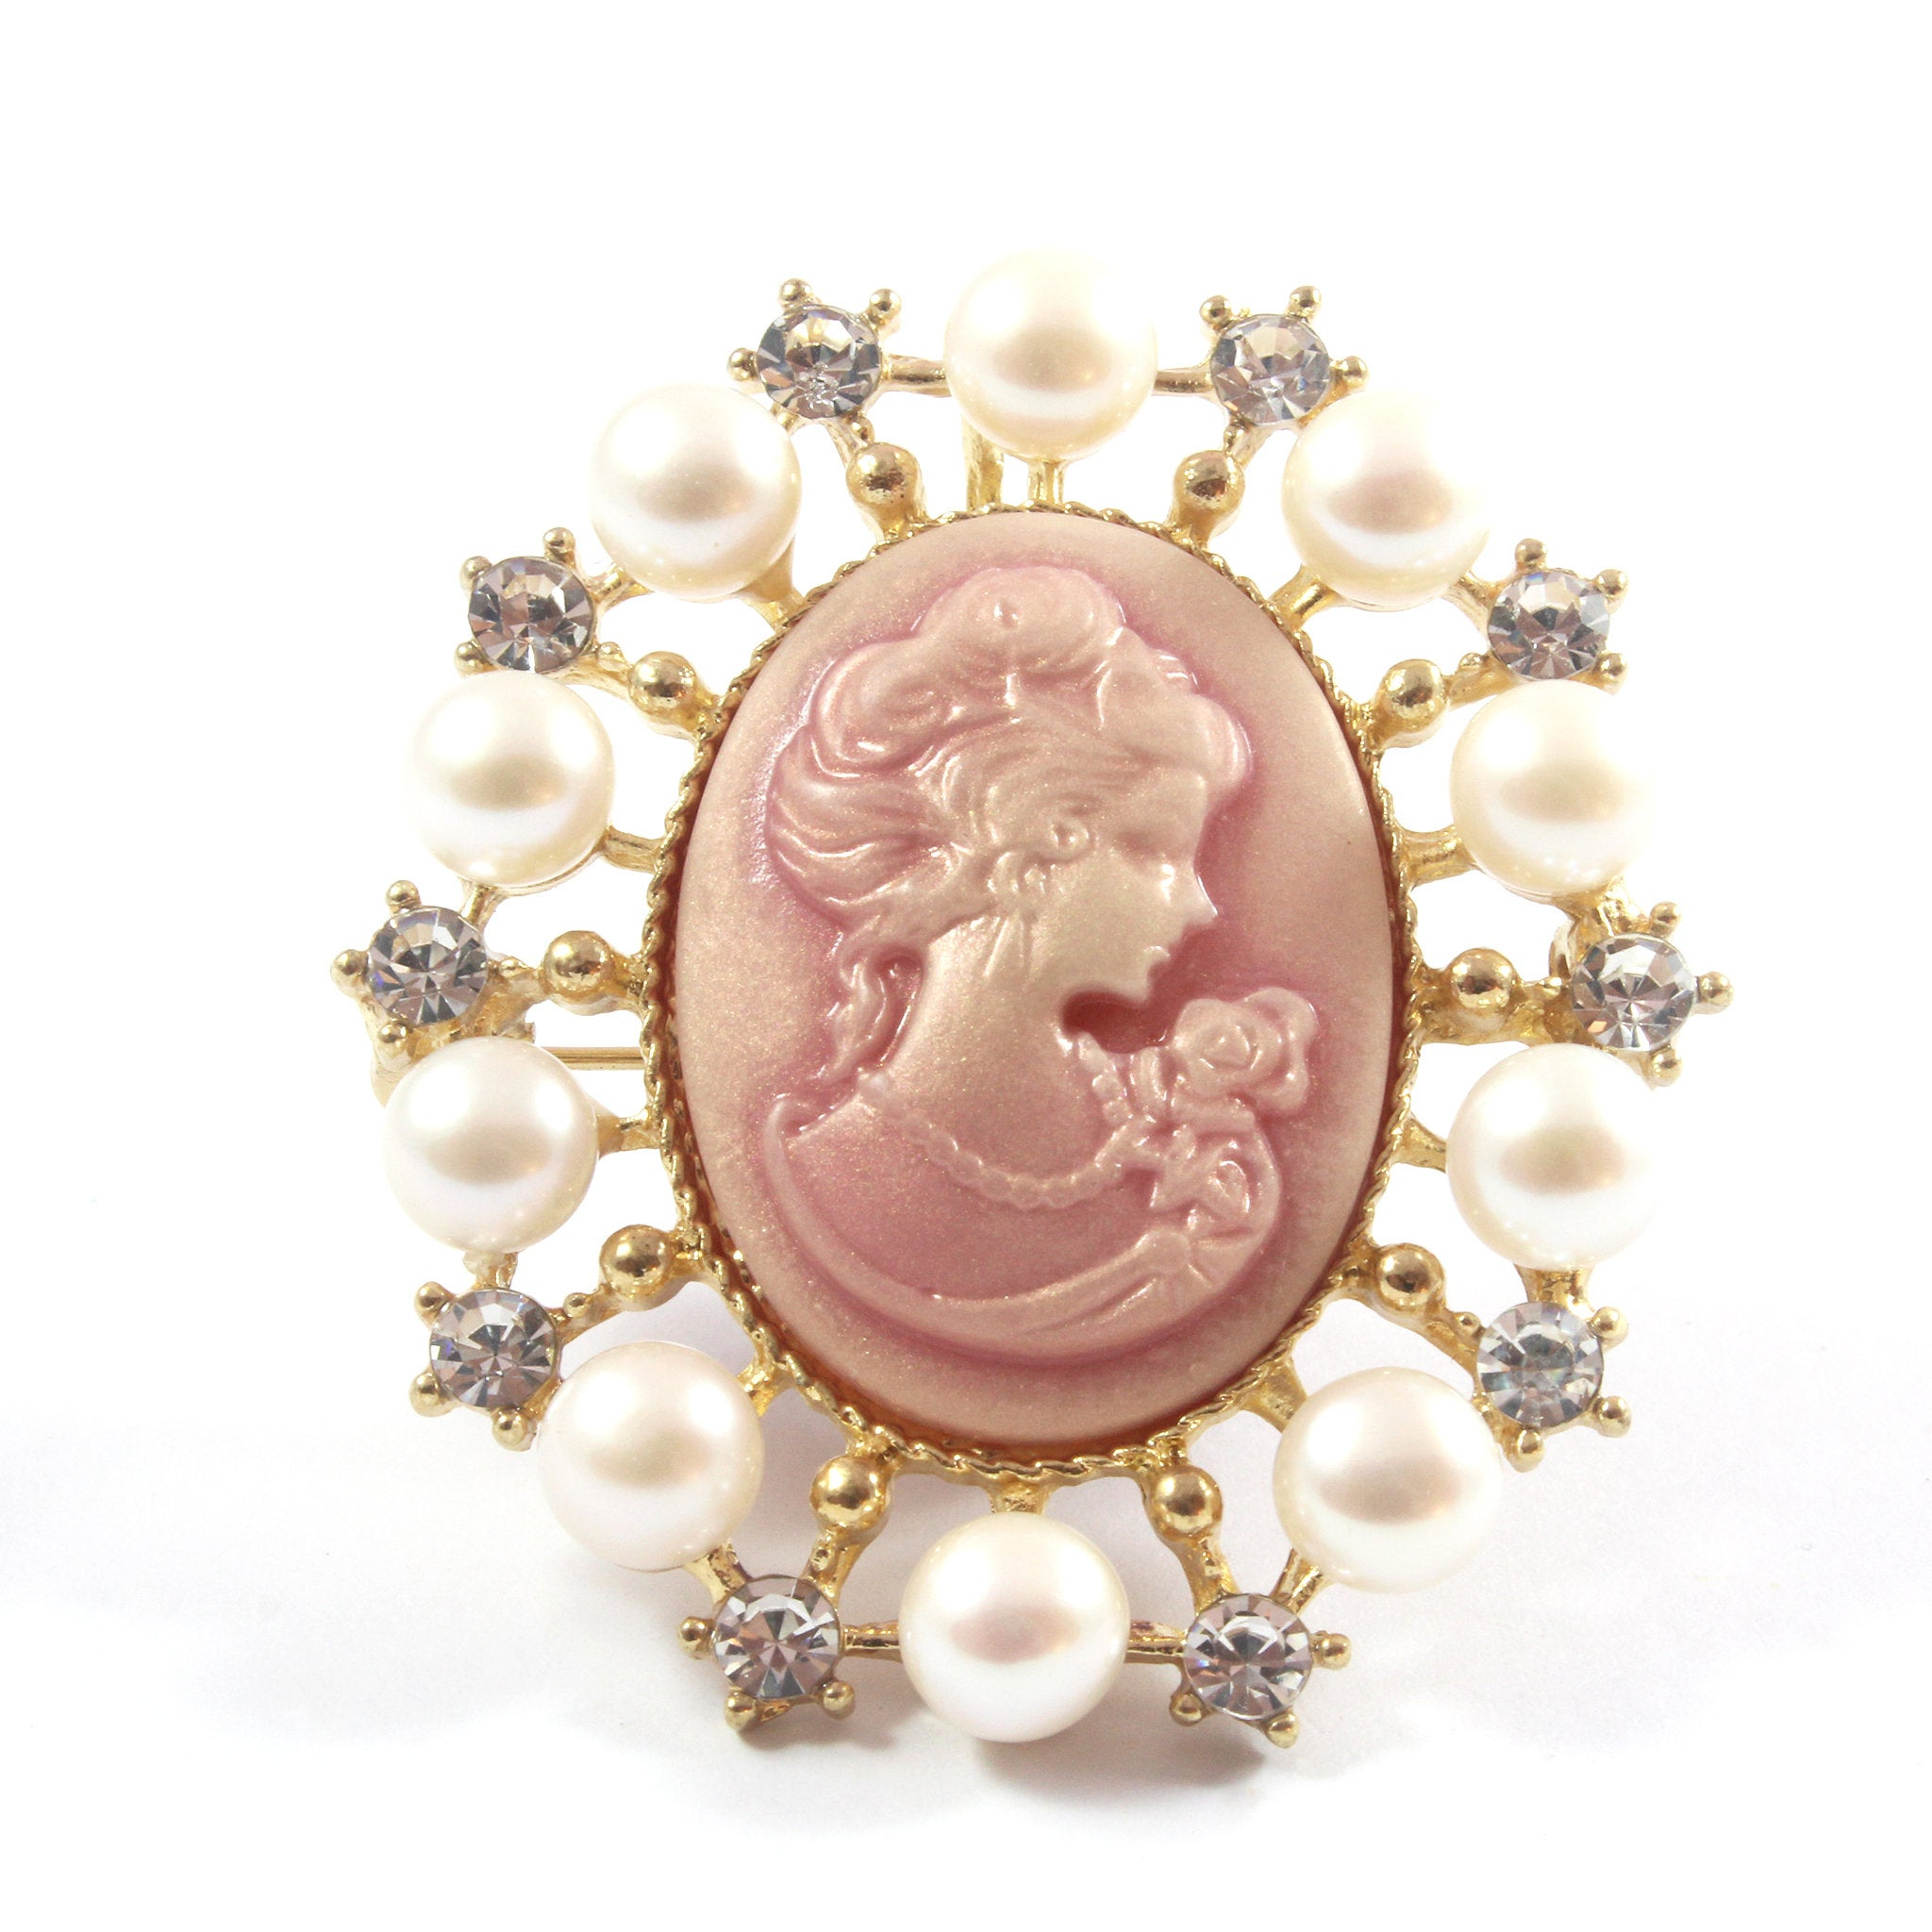 Blue/Pink Cameo White Freshwater Cultured Pearl Brooch 6.5-7.0mm